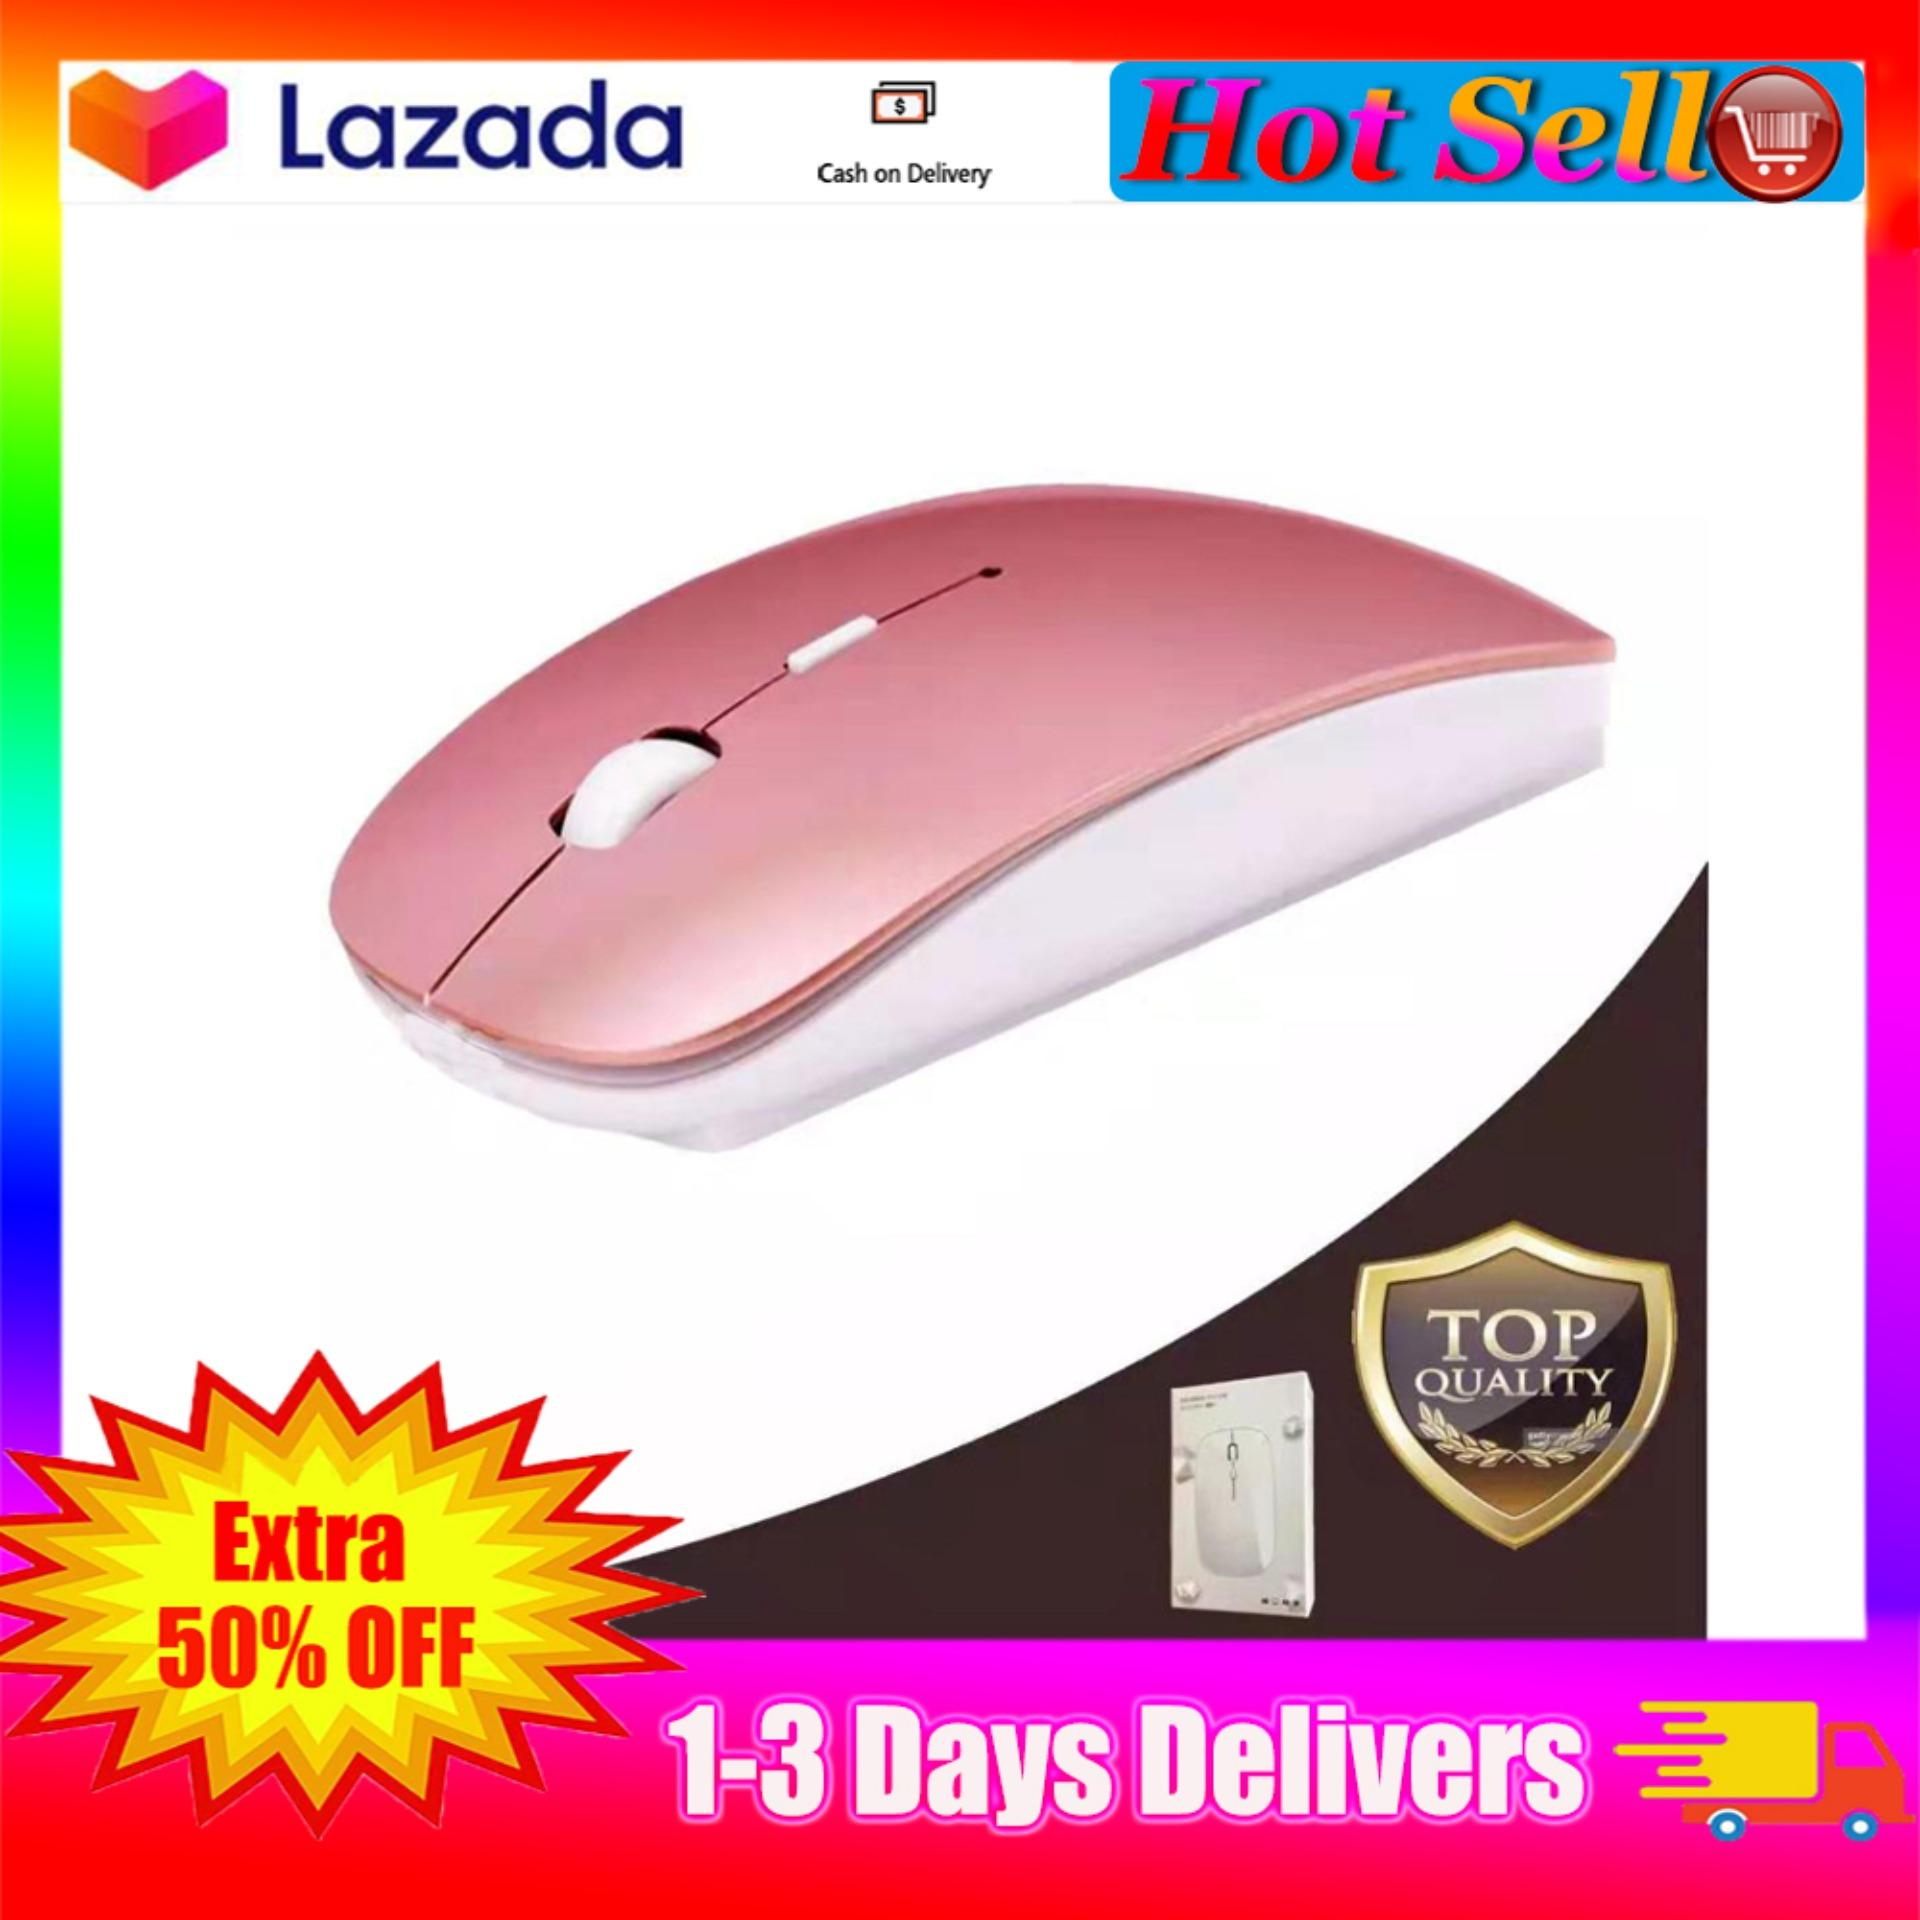 【Hot Sell】Ultra-Thin Curved Wireless Slim Optical Mouse Laser-Grade Optical  Sensor (Light and Portable) Gaming Mouse and Office Mouse Compatible -